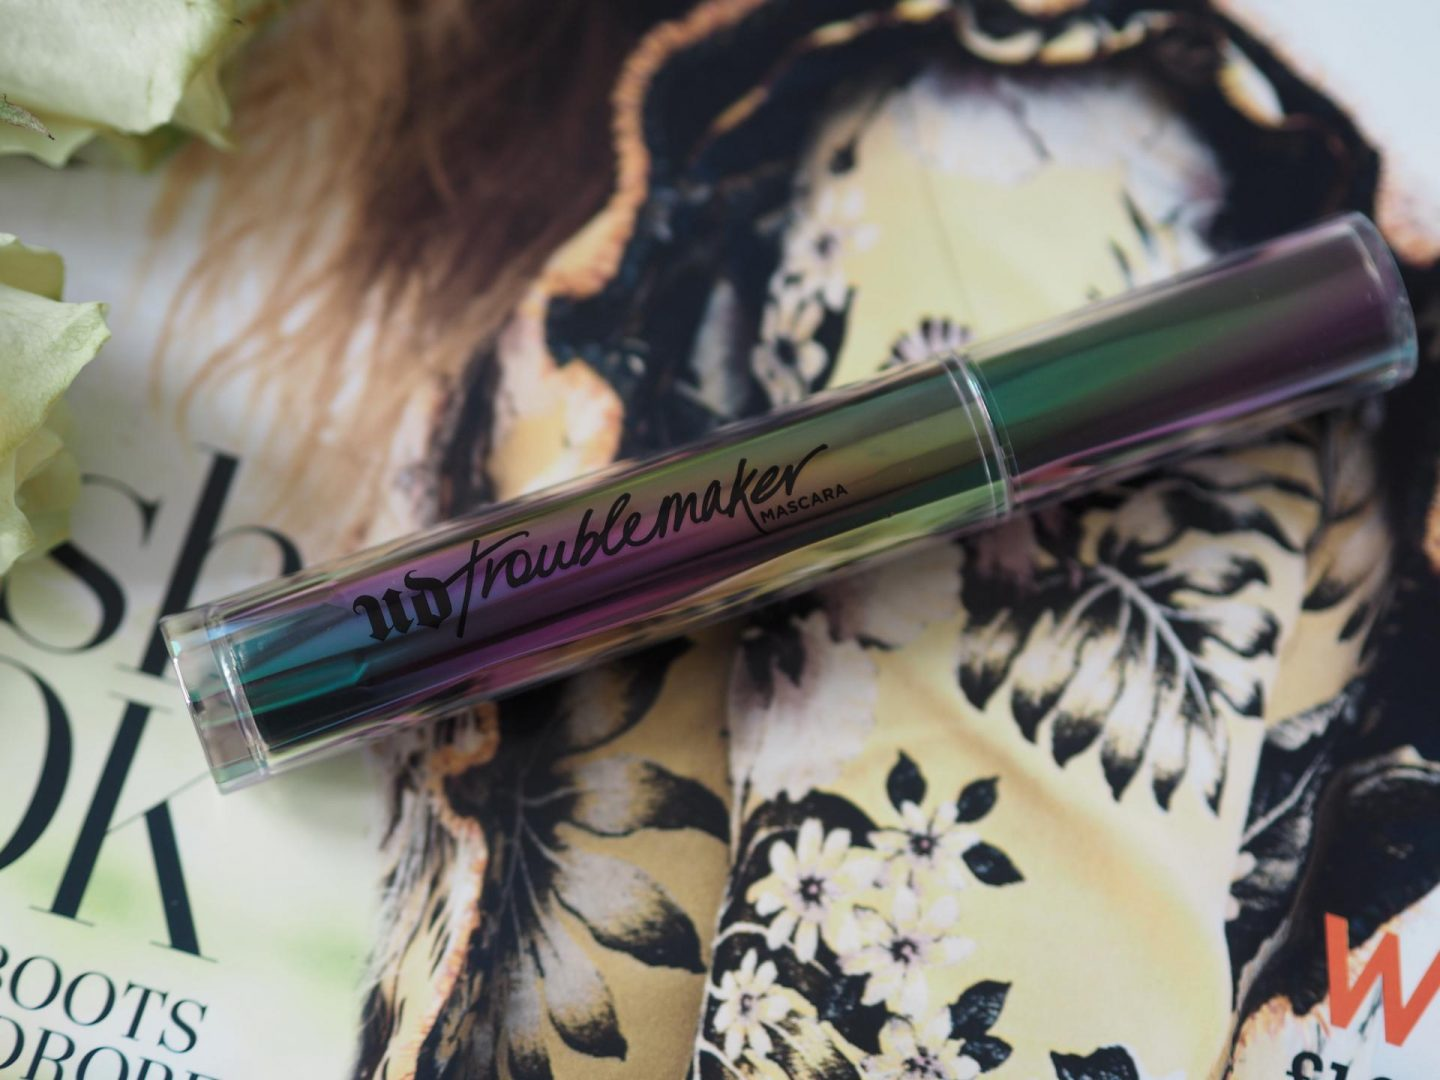 New Make-Up Products - Product: Urban Decay Troublemaker Mascara